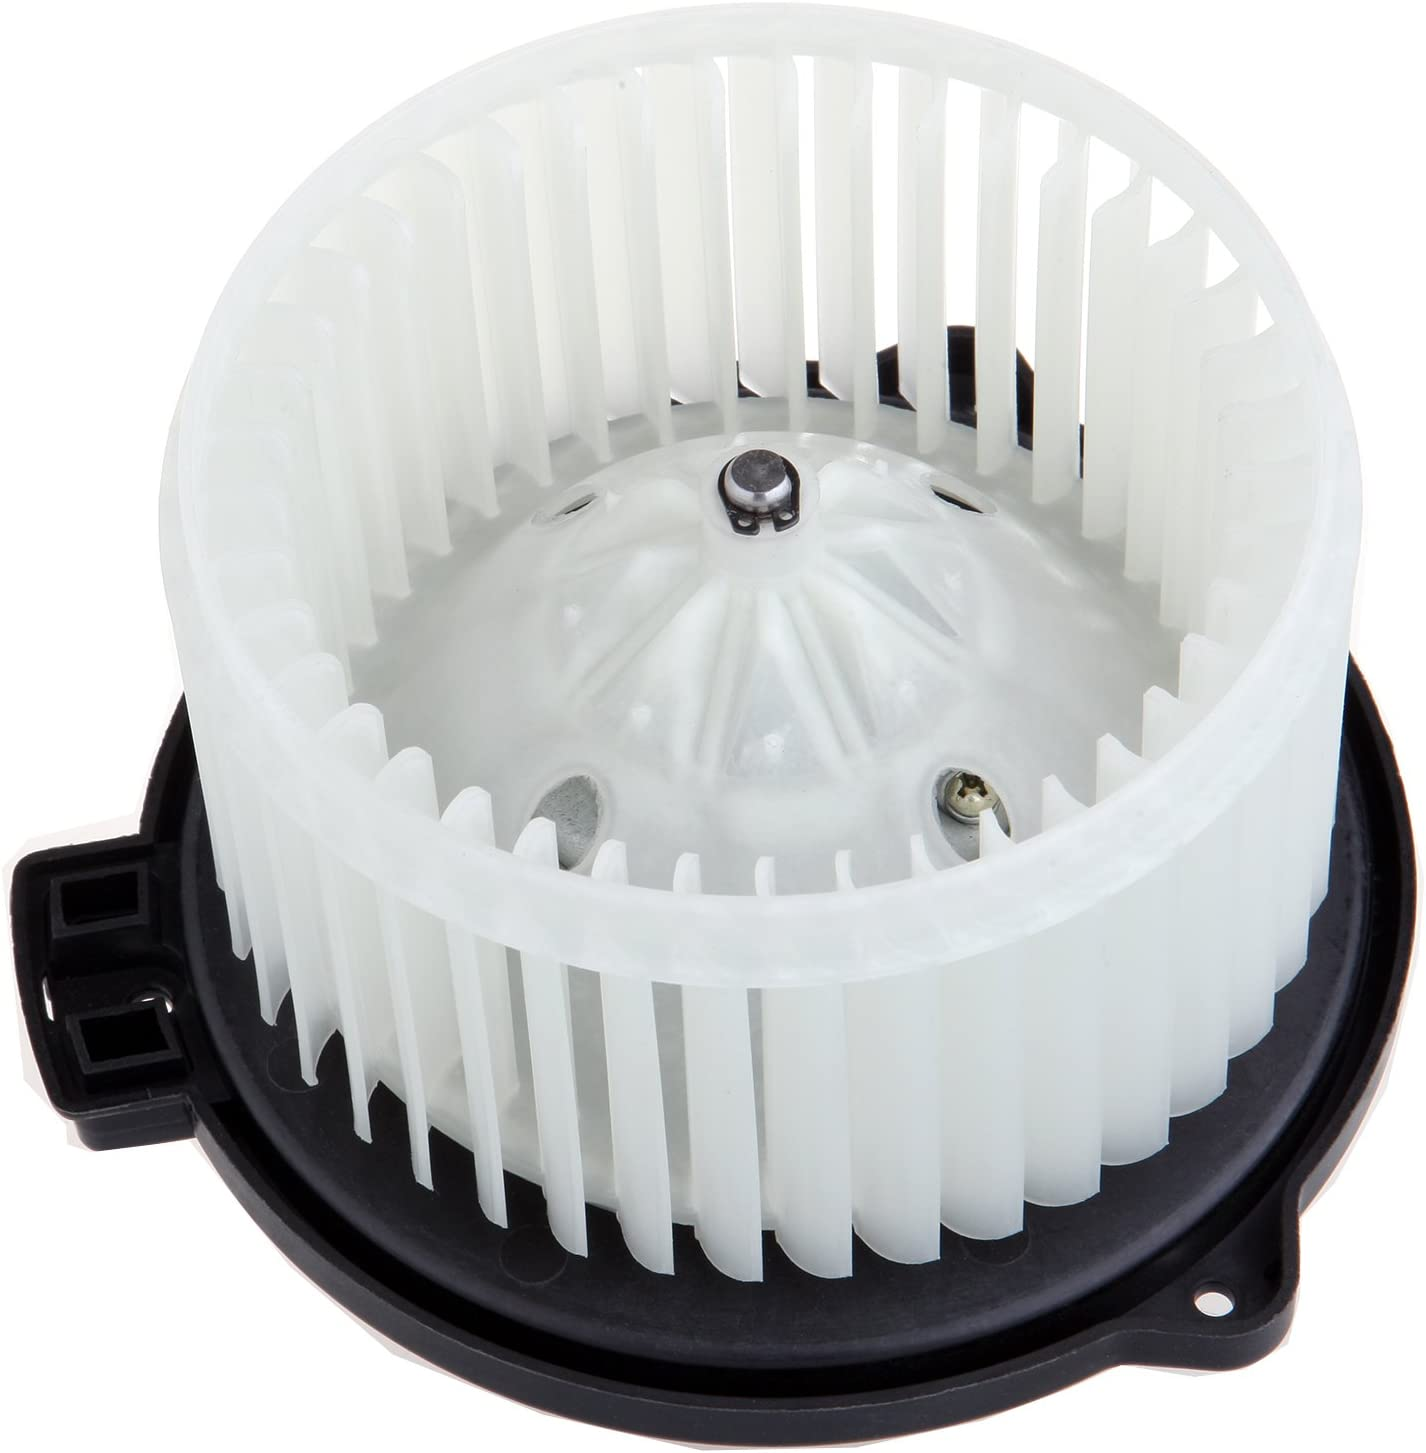 1995 1996 1997 1998 1999 2000 2001 2002 2003 2004 T-oyota Tacoma TUPARTS AC Conditioning Heater Blower Motor With Fan HVAC Motors Fit For 2000 2001 2002 2003 2004 2005 T-oyota Echo